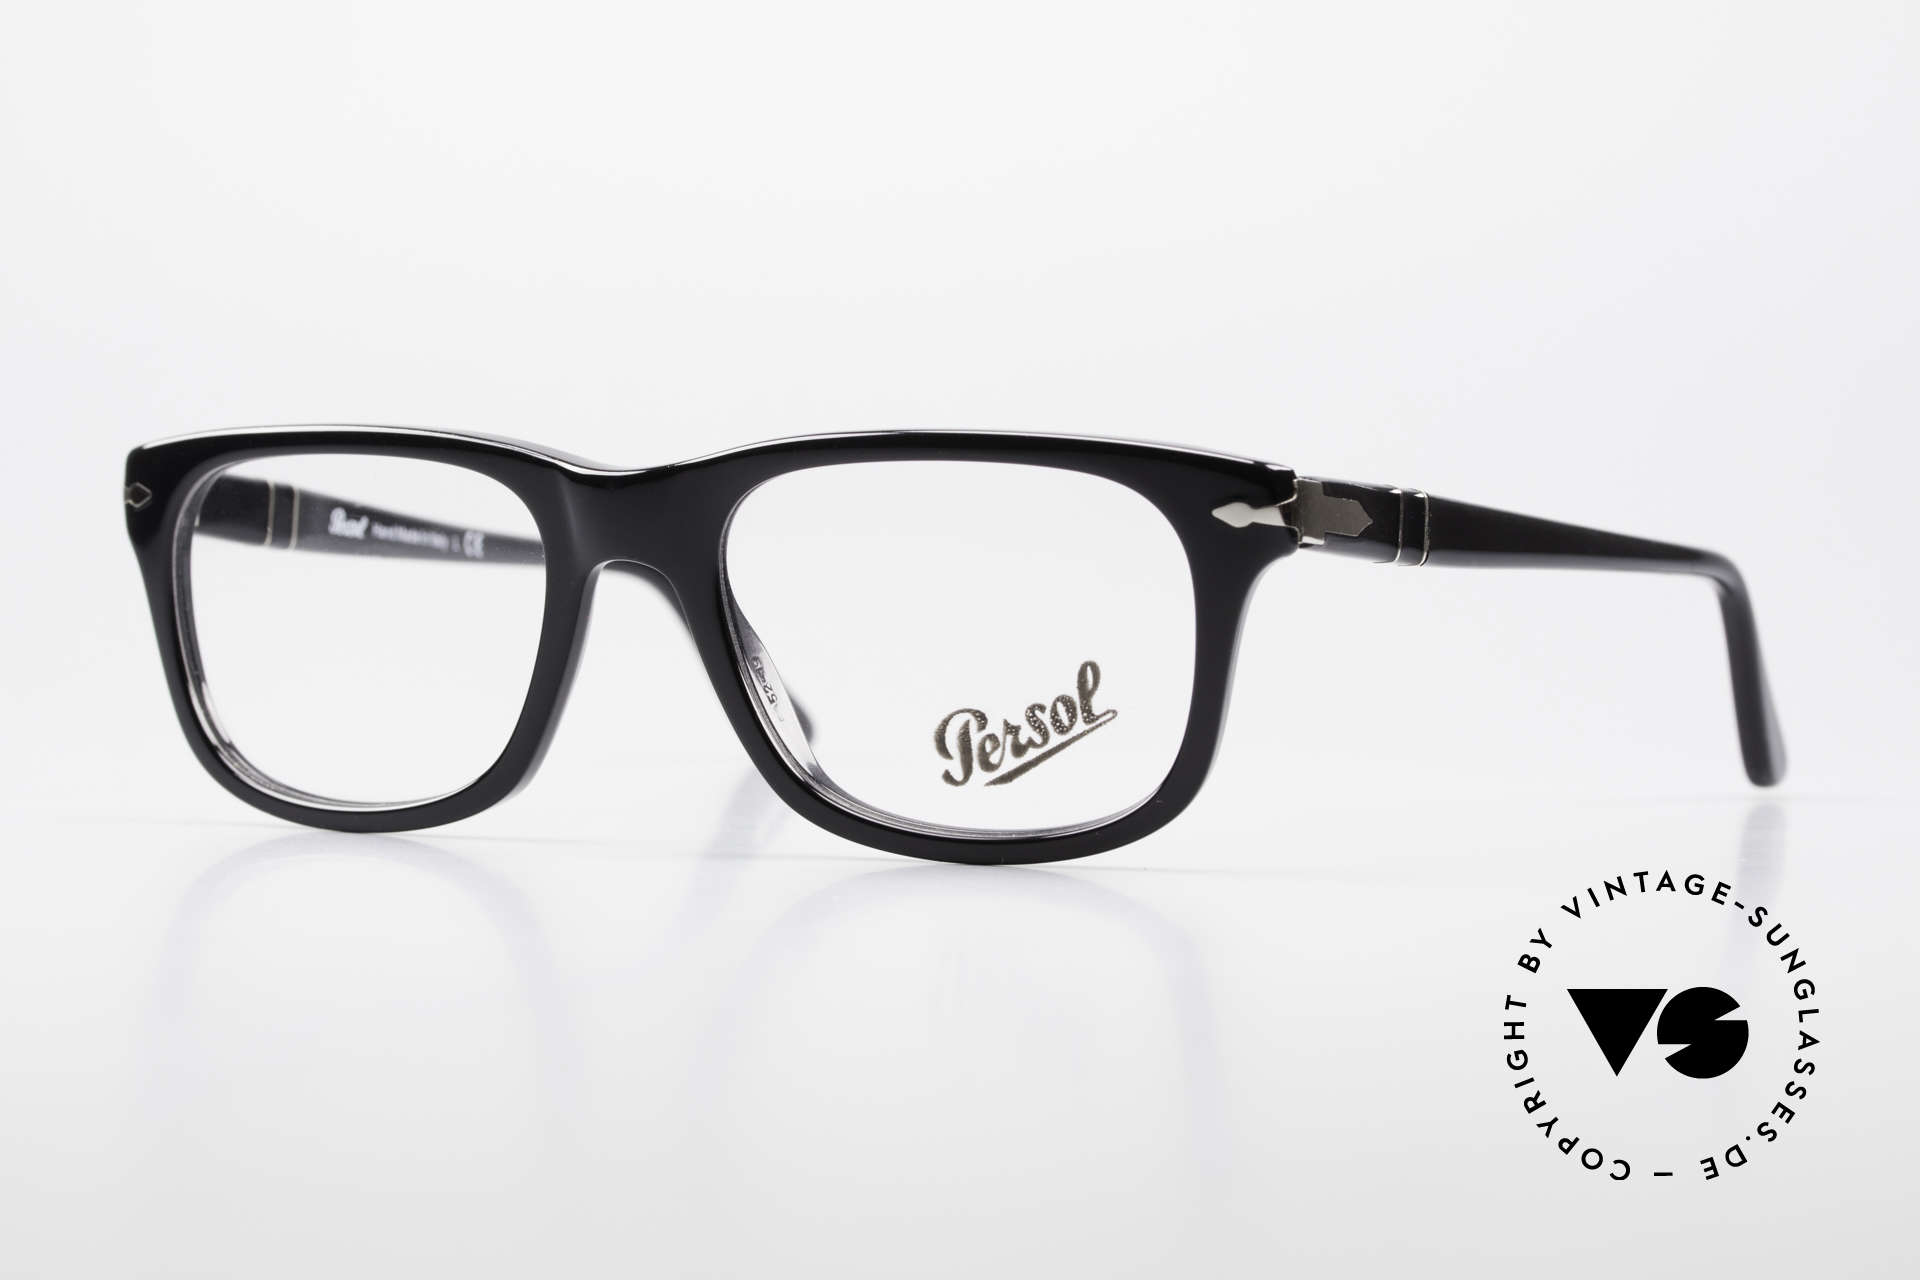 Persol 3029 Striking Persol Glasses Unisex, Persol glasses, mod. 3029 in medium size 52/19, Made for Men and Women